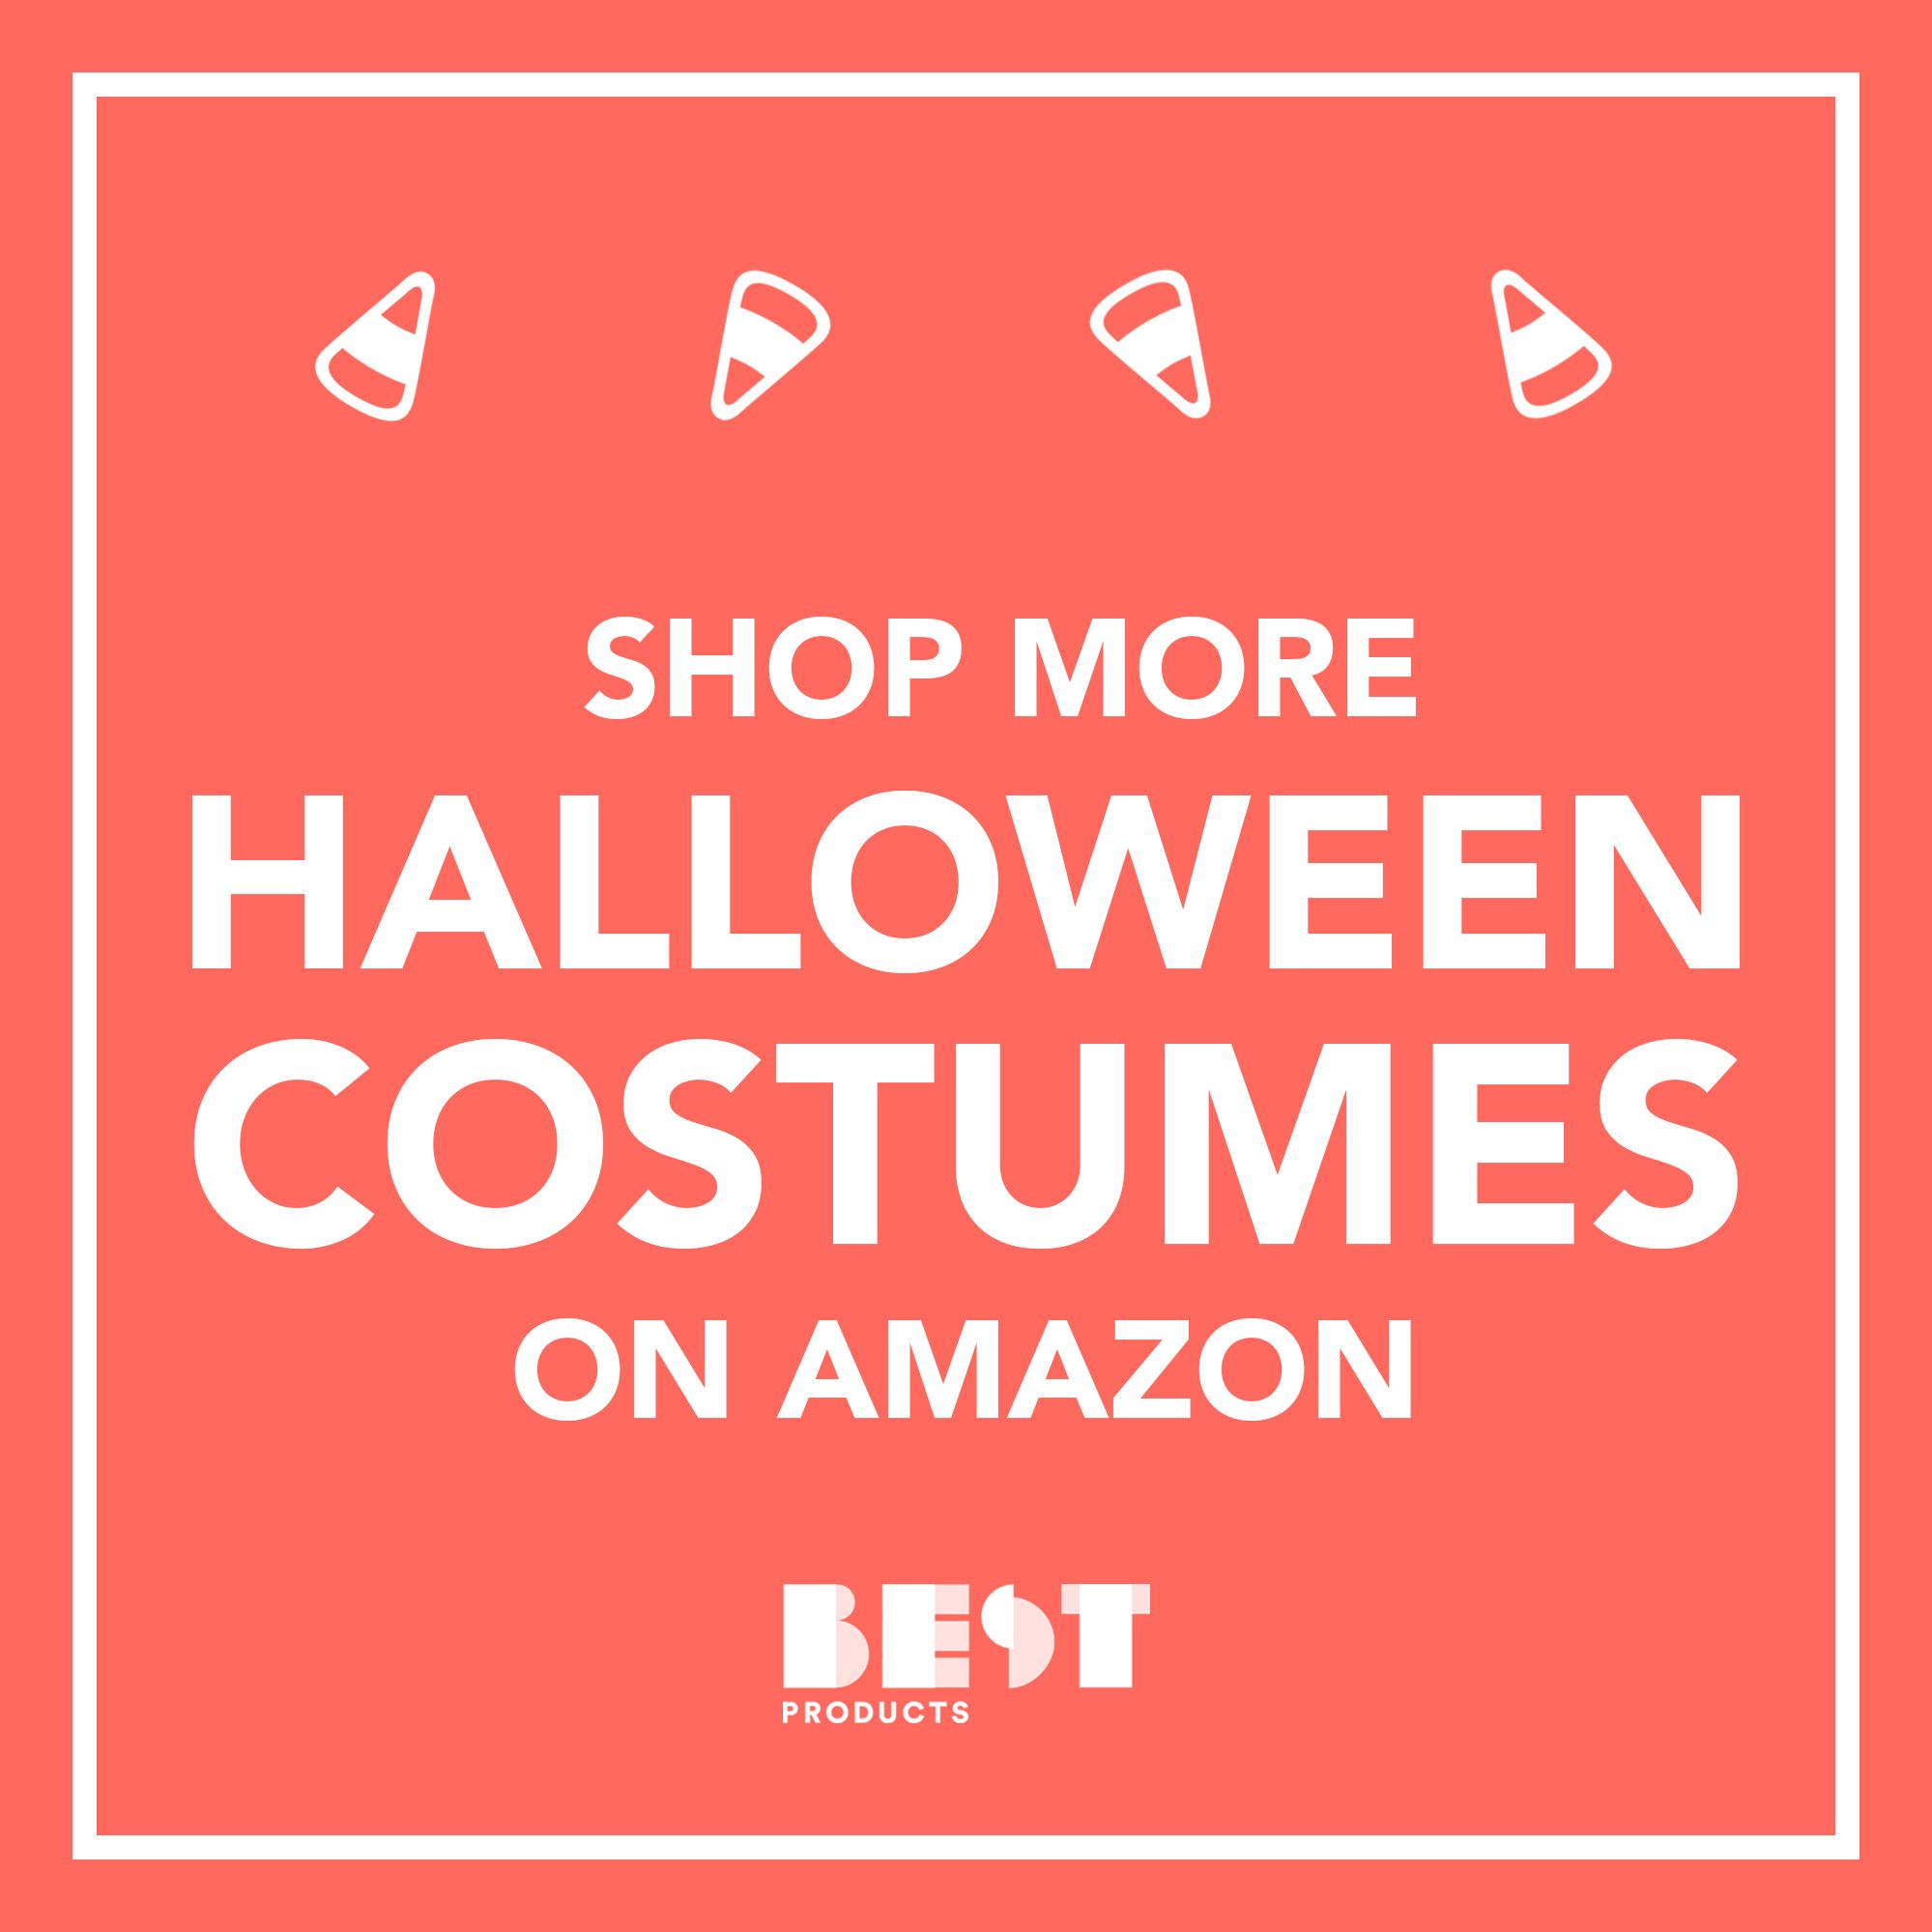 25 best cheap halloween costumes of 2018 halloween costumes under 30